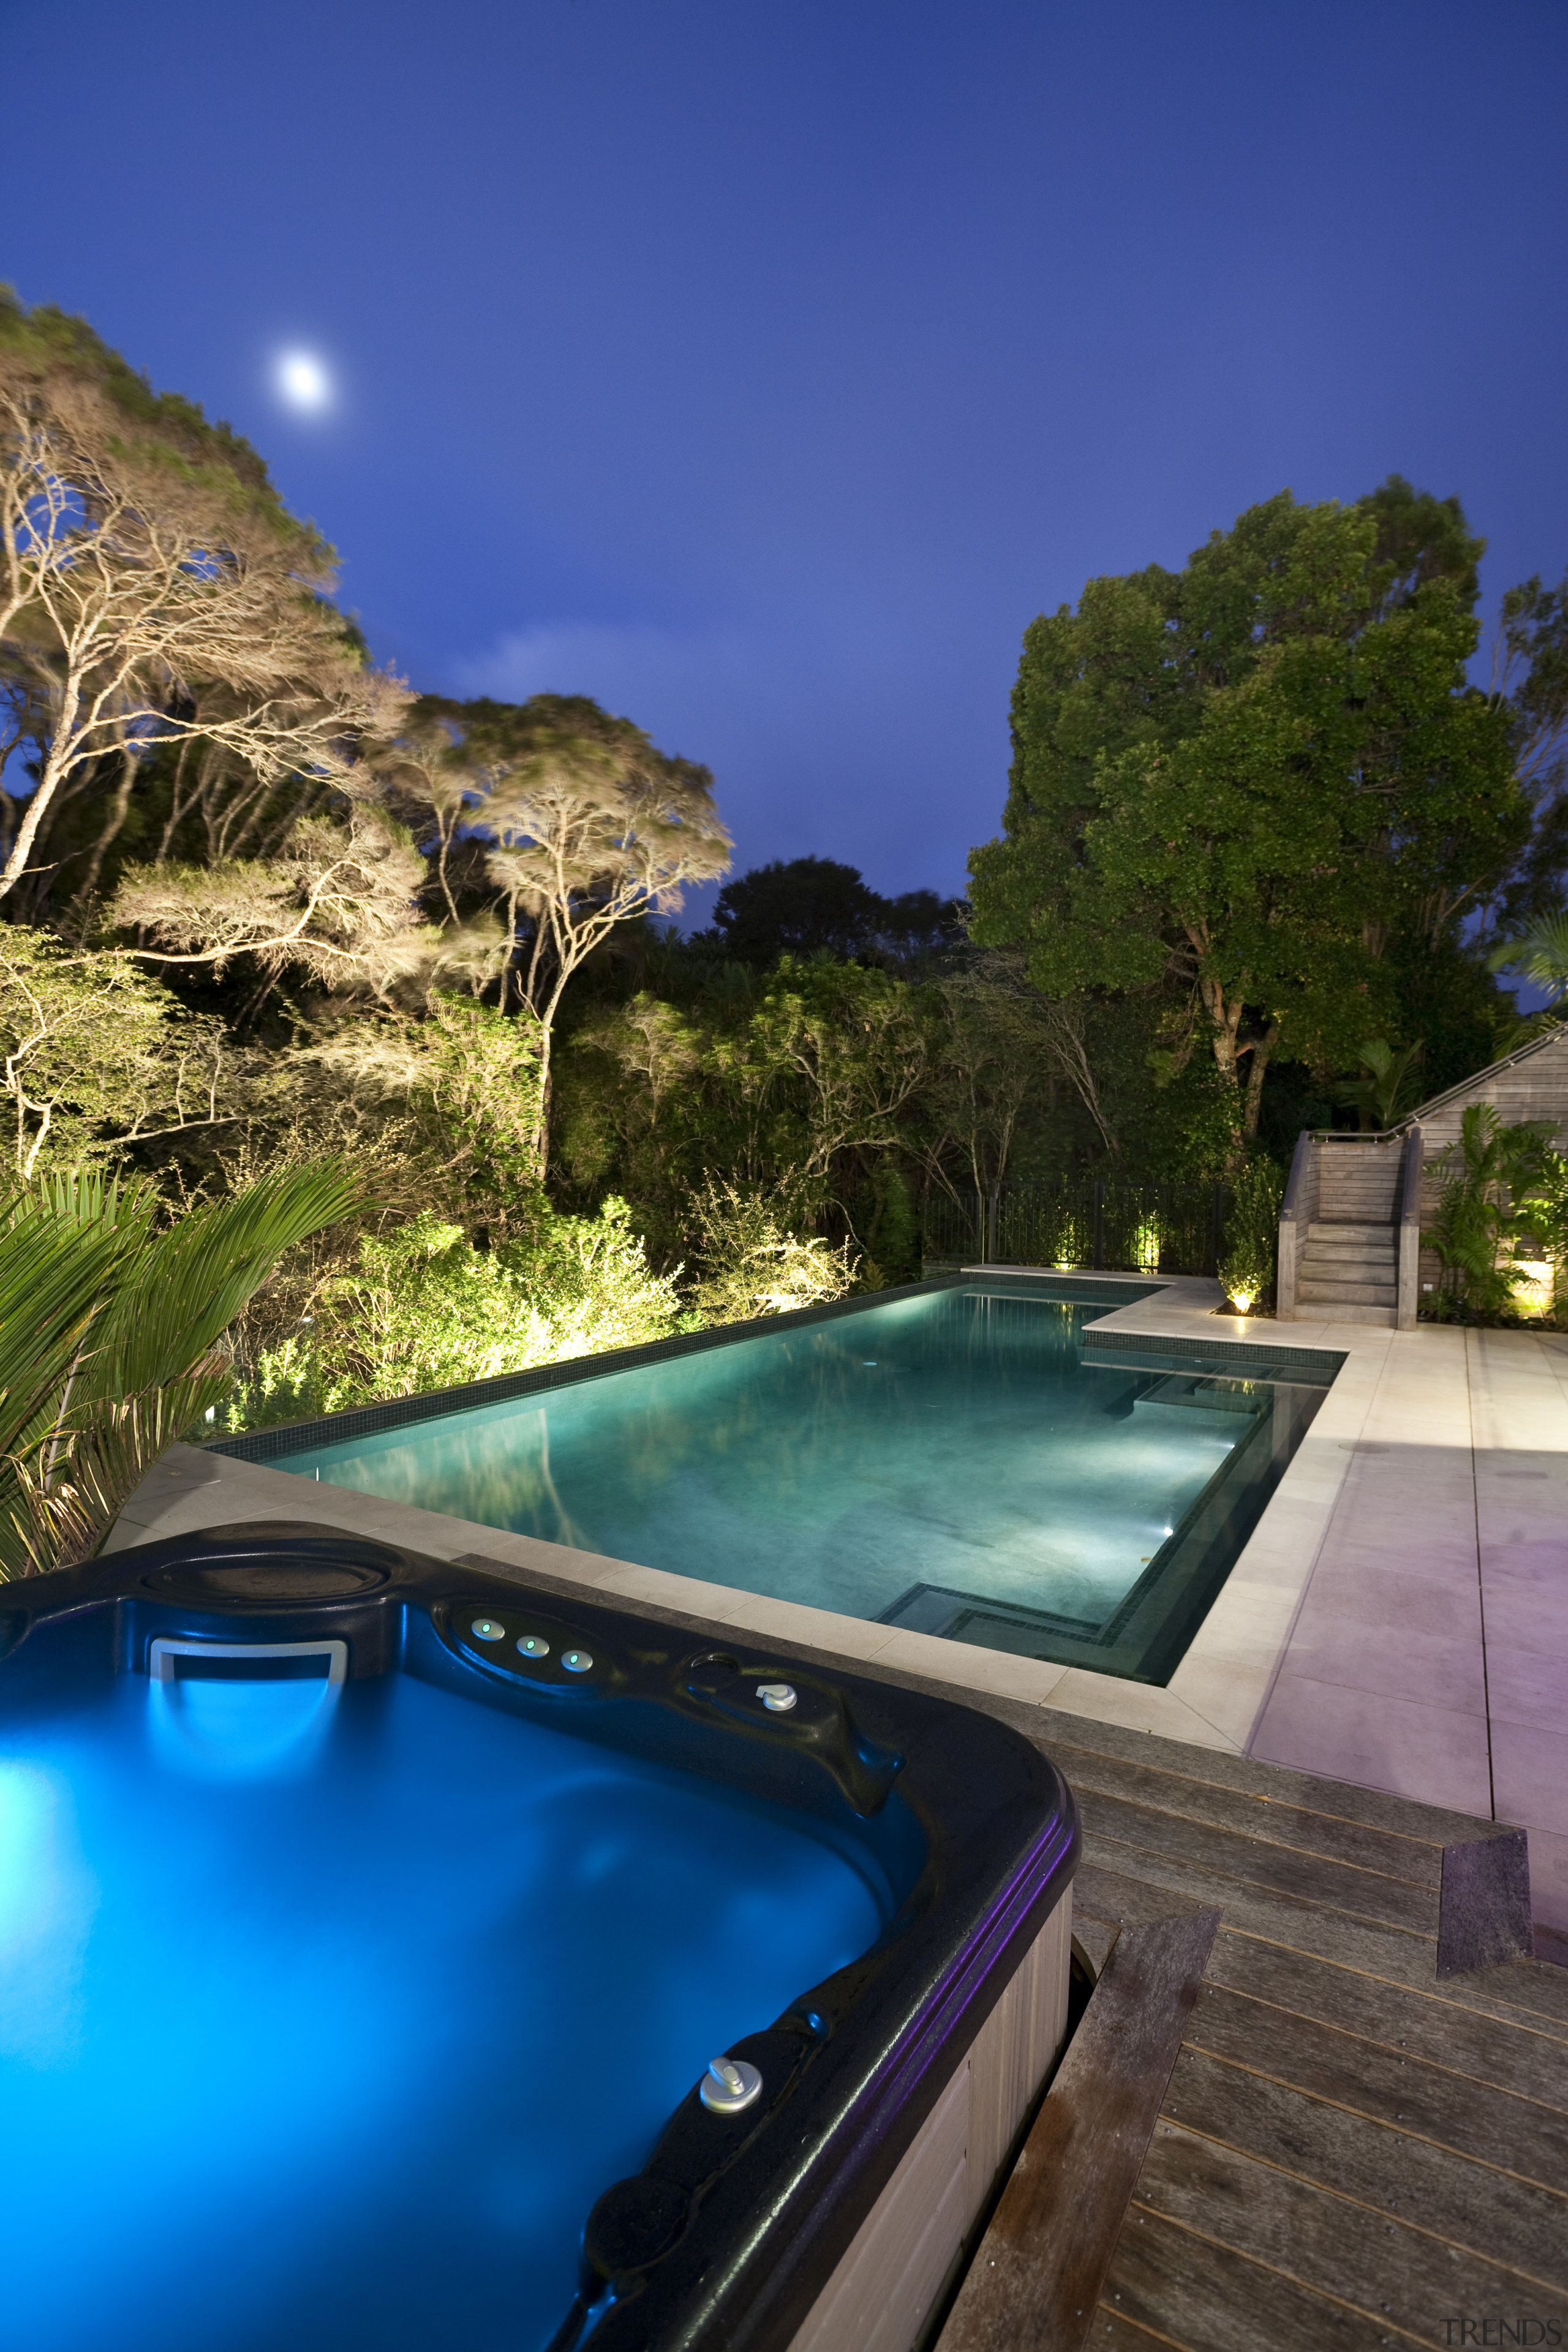 View of sleek poolscape with textured stone wall, estate, leisure, lighting, real estate, reflection, resort, sky, swimming pool, tree, water, blue